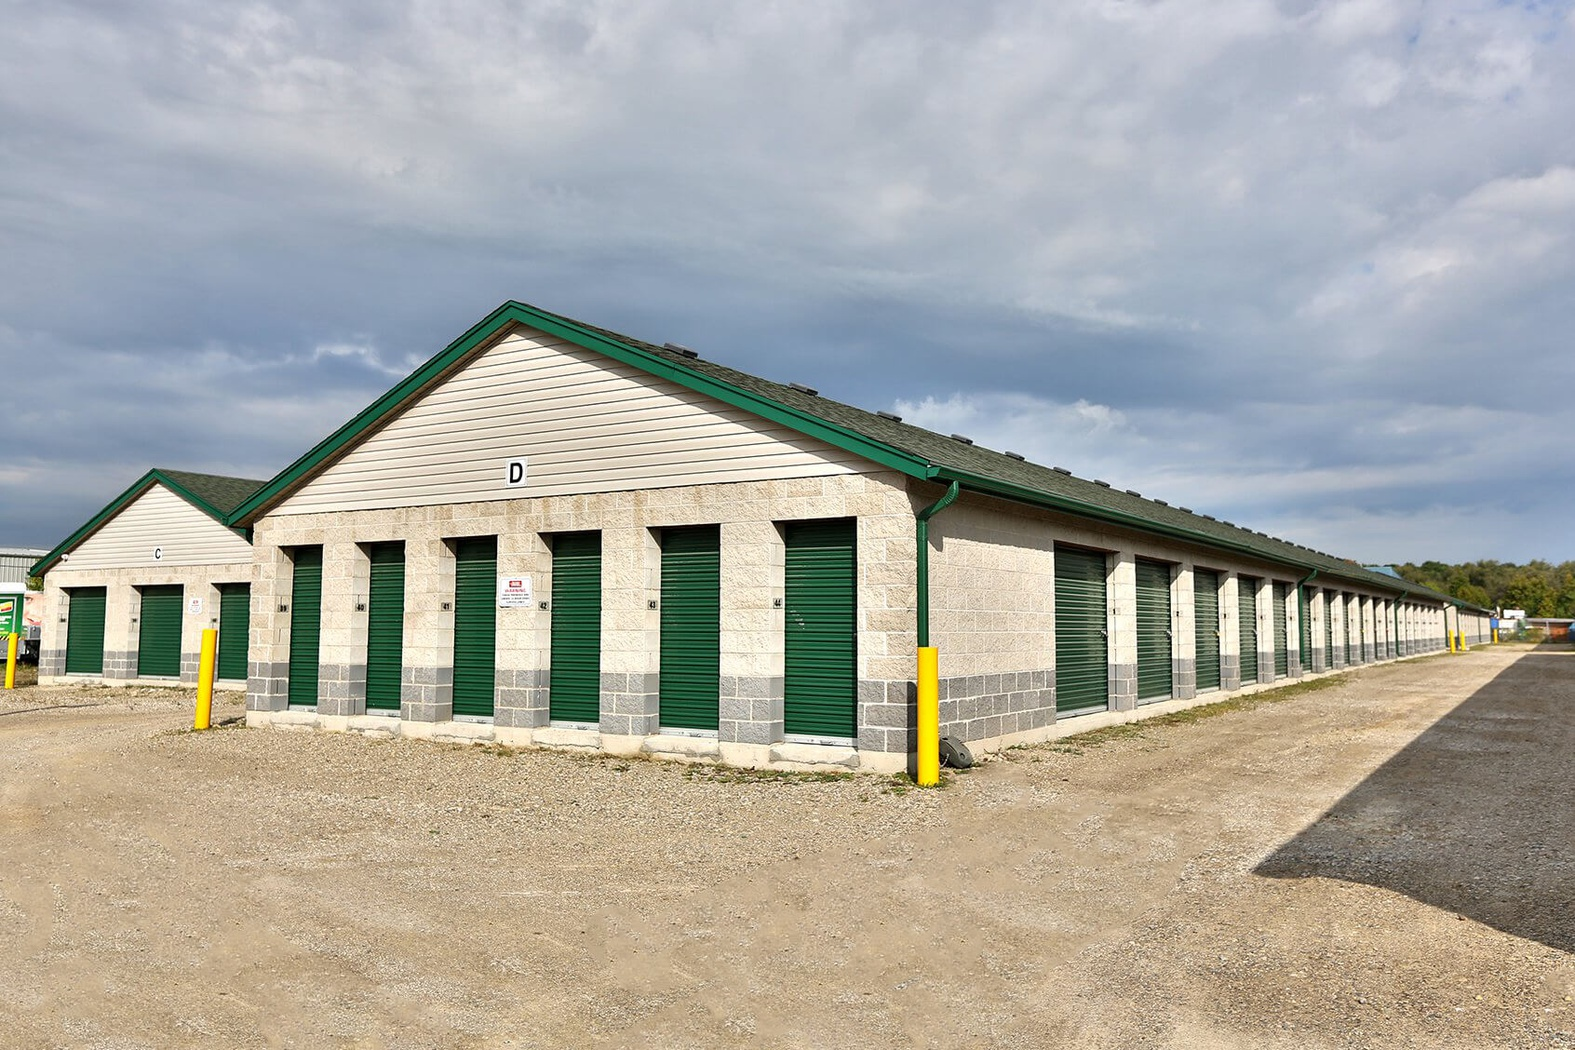 Rent Kitchener storage units at 2444 Shirley Dr. We offer a wide-range of affordable self storage units and your first 4 weeks are free!